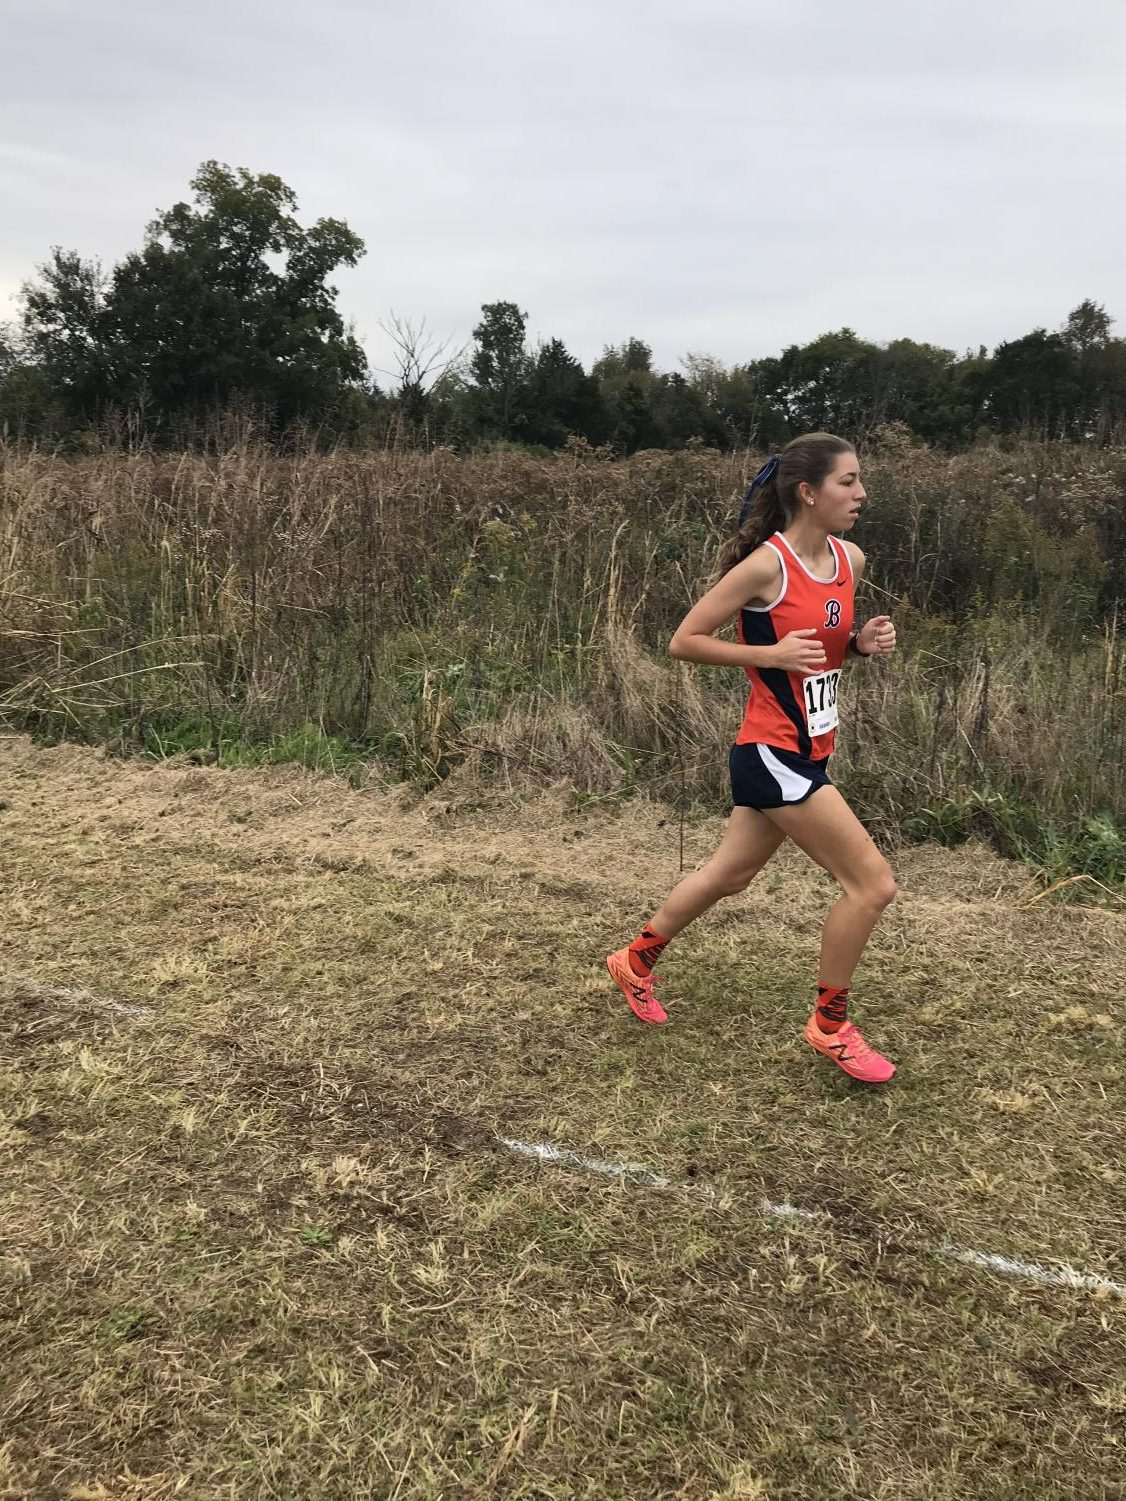 Megan Roth, senior, running in Cookeville.